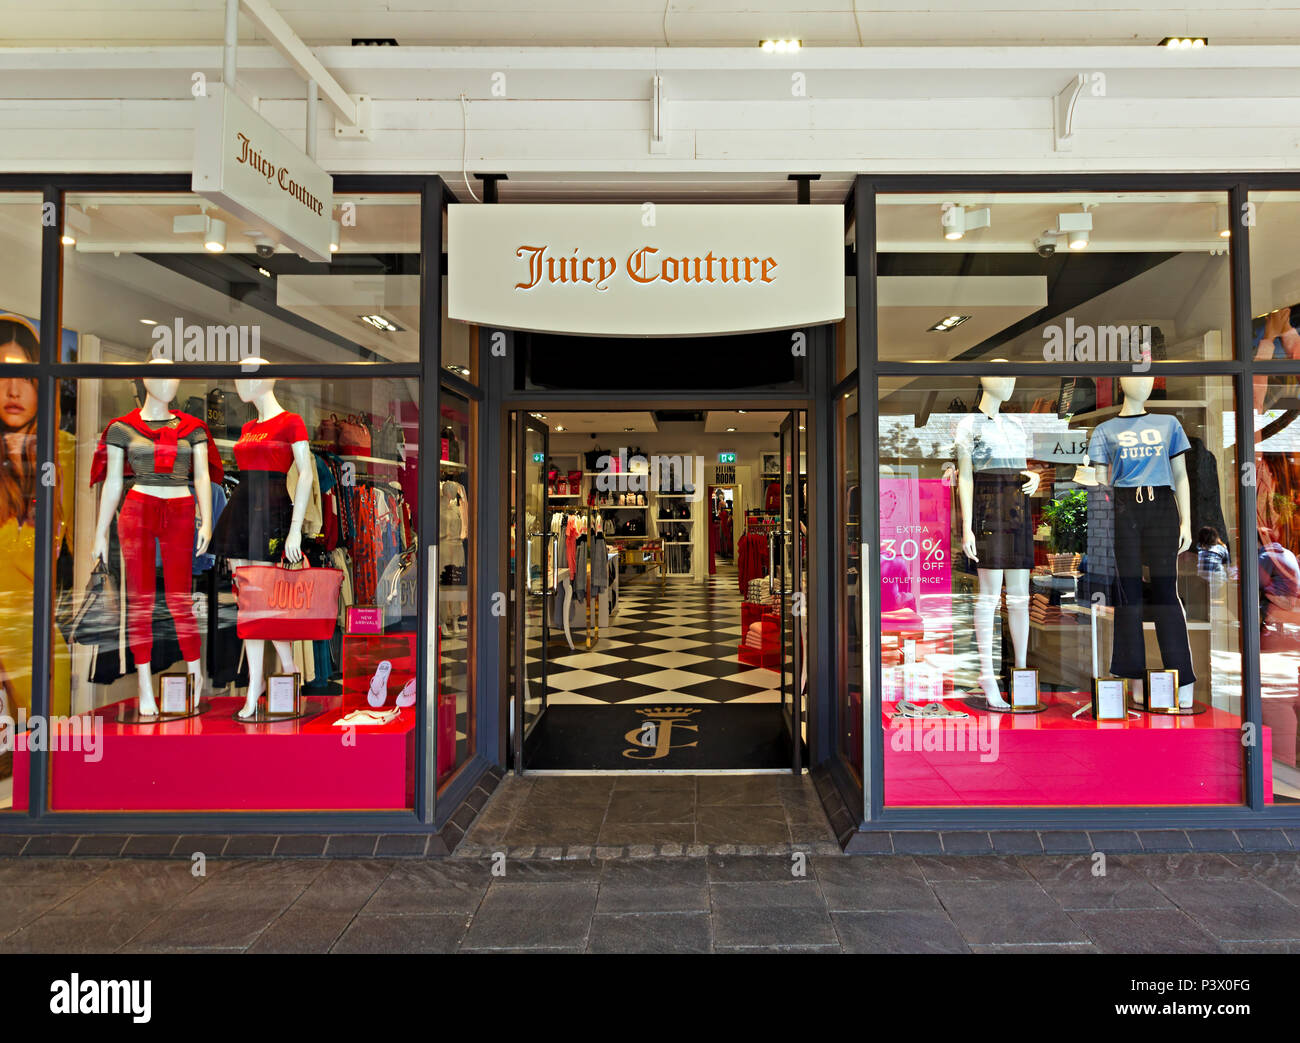 Shop frontage of the Juicy Couture store at the Cheshire Oaks Designer Outlet, Ellesmere Port Cheshire. - Stock Image